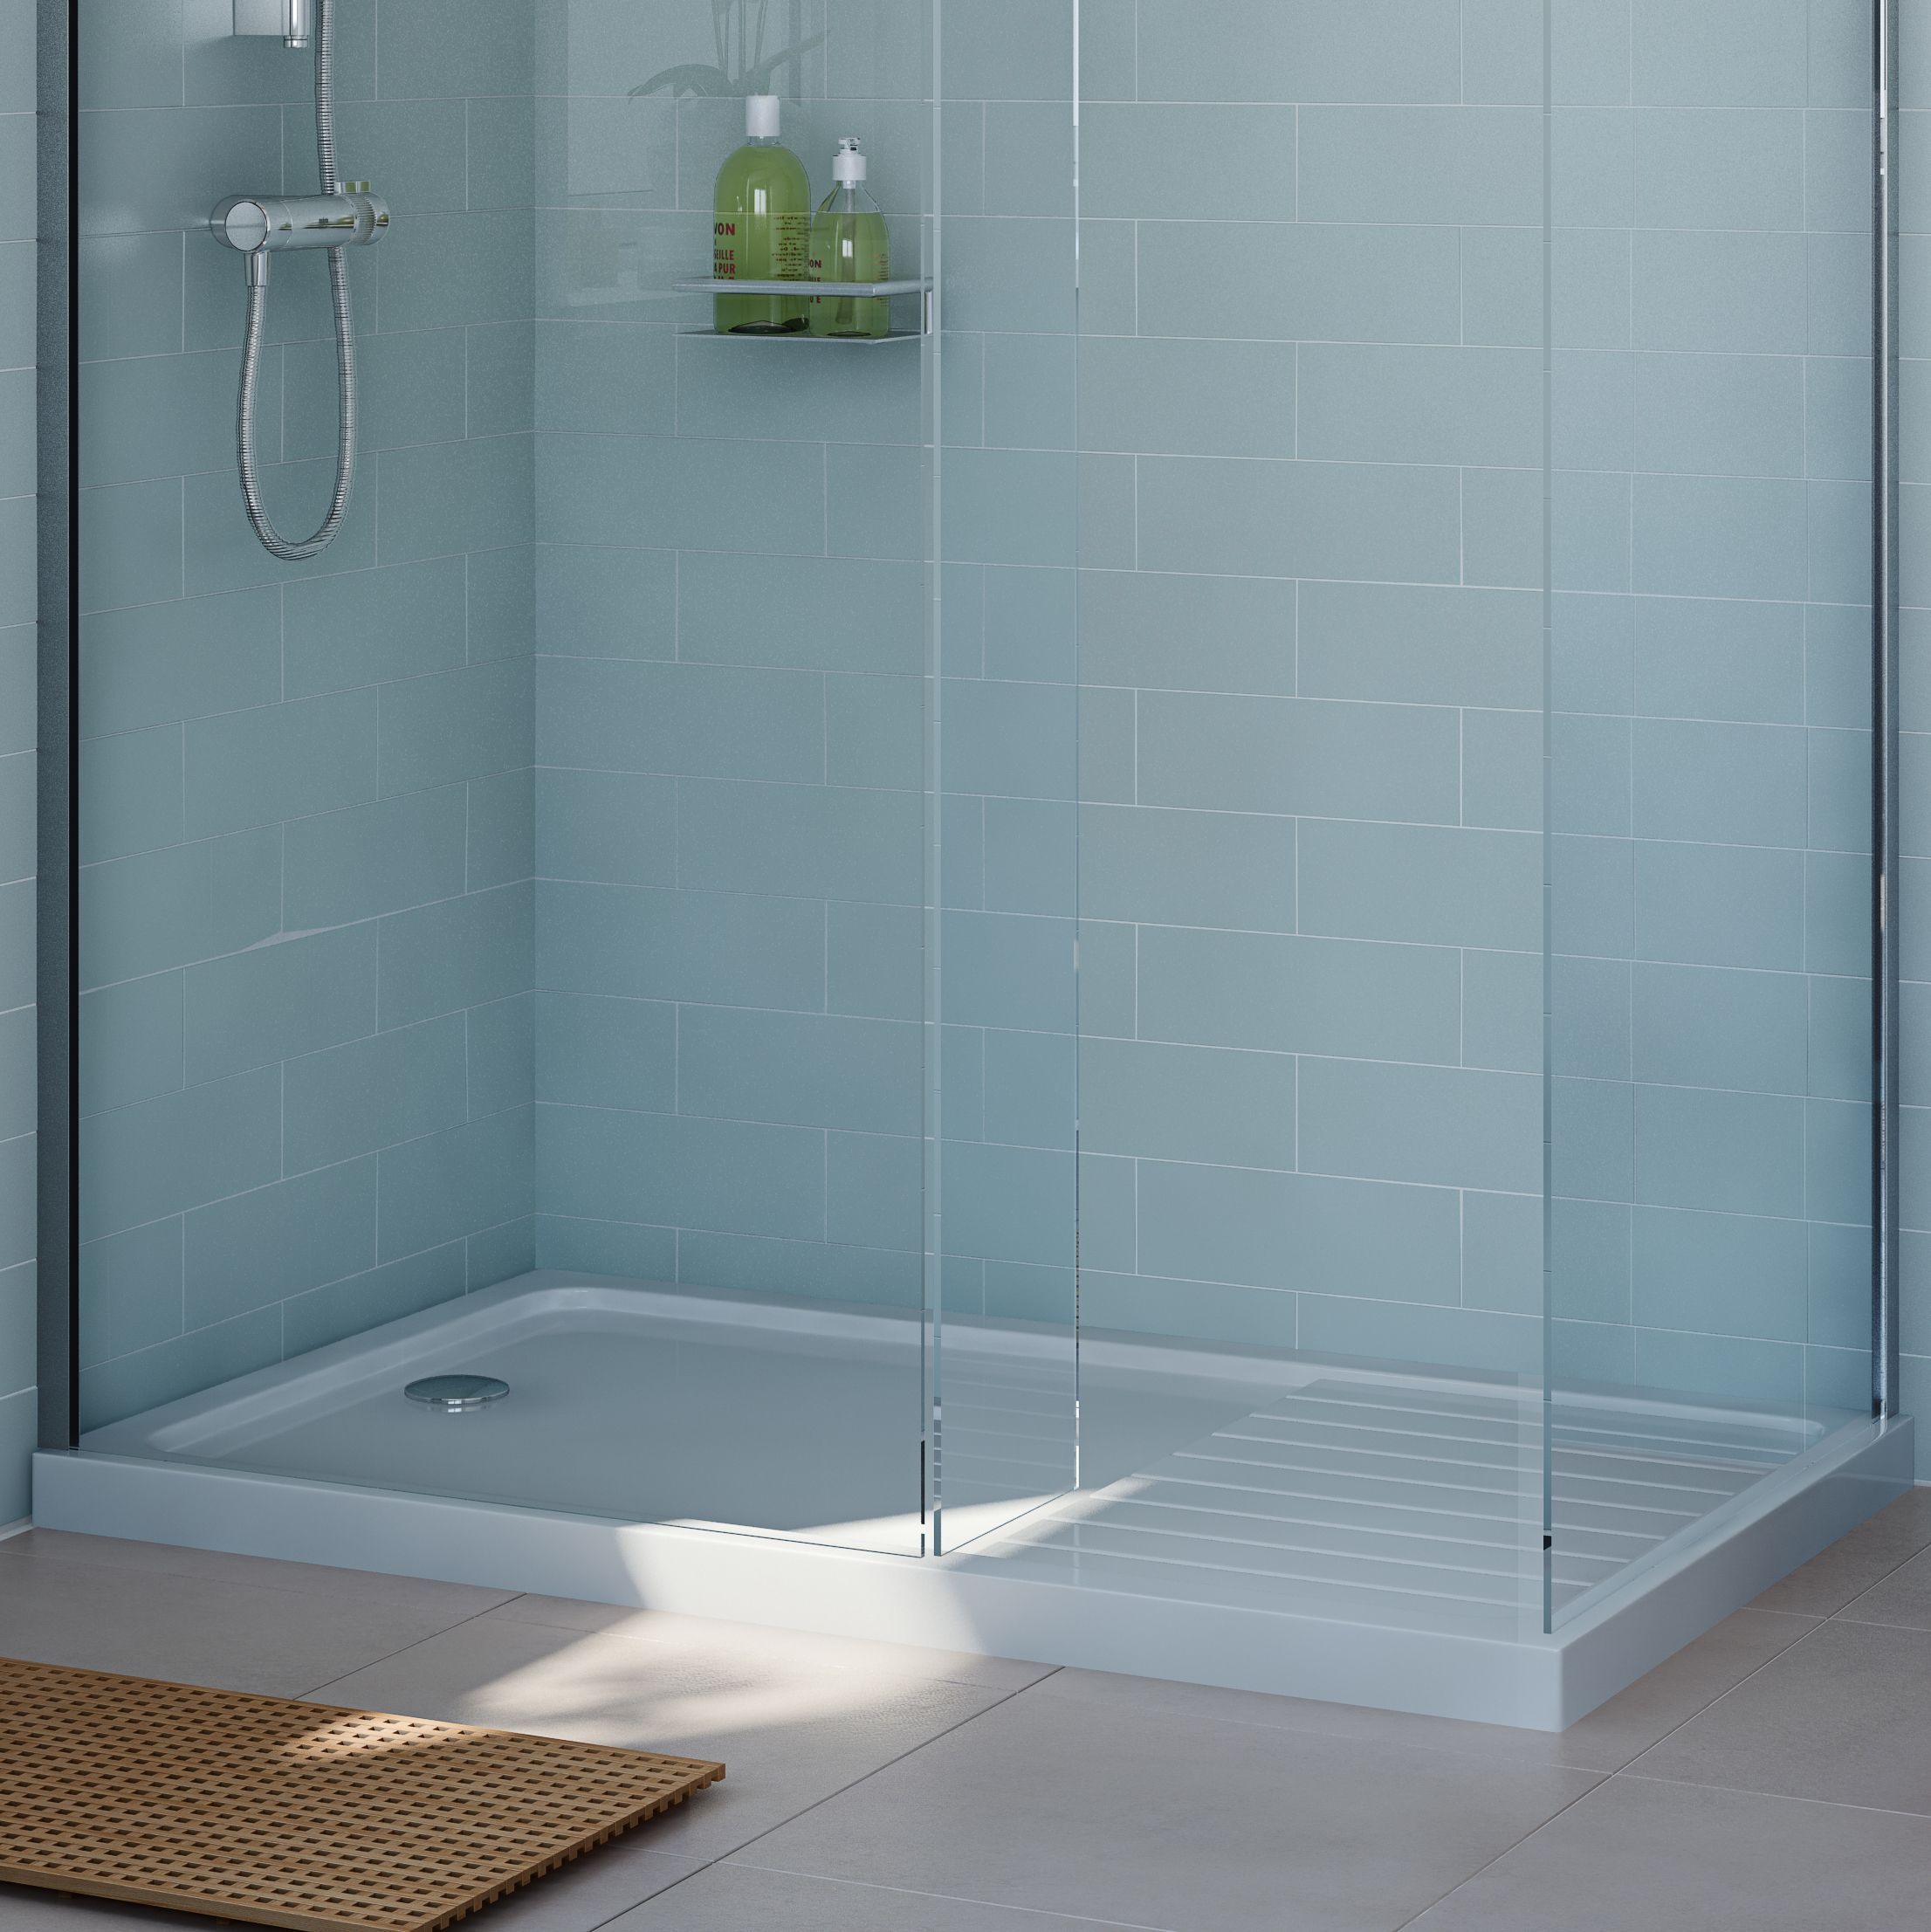 Cooke Amp Lewis Rectangular Shower Tray L 1300mm W 800mm D 40mm Departments Diy At B Amp Q Shower Tray Boys Bathroom Walk Through Shower